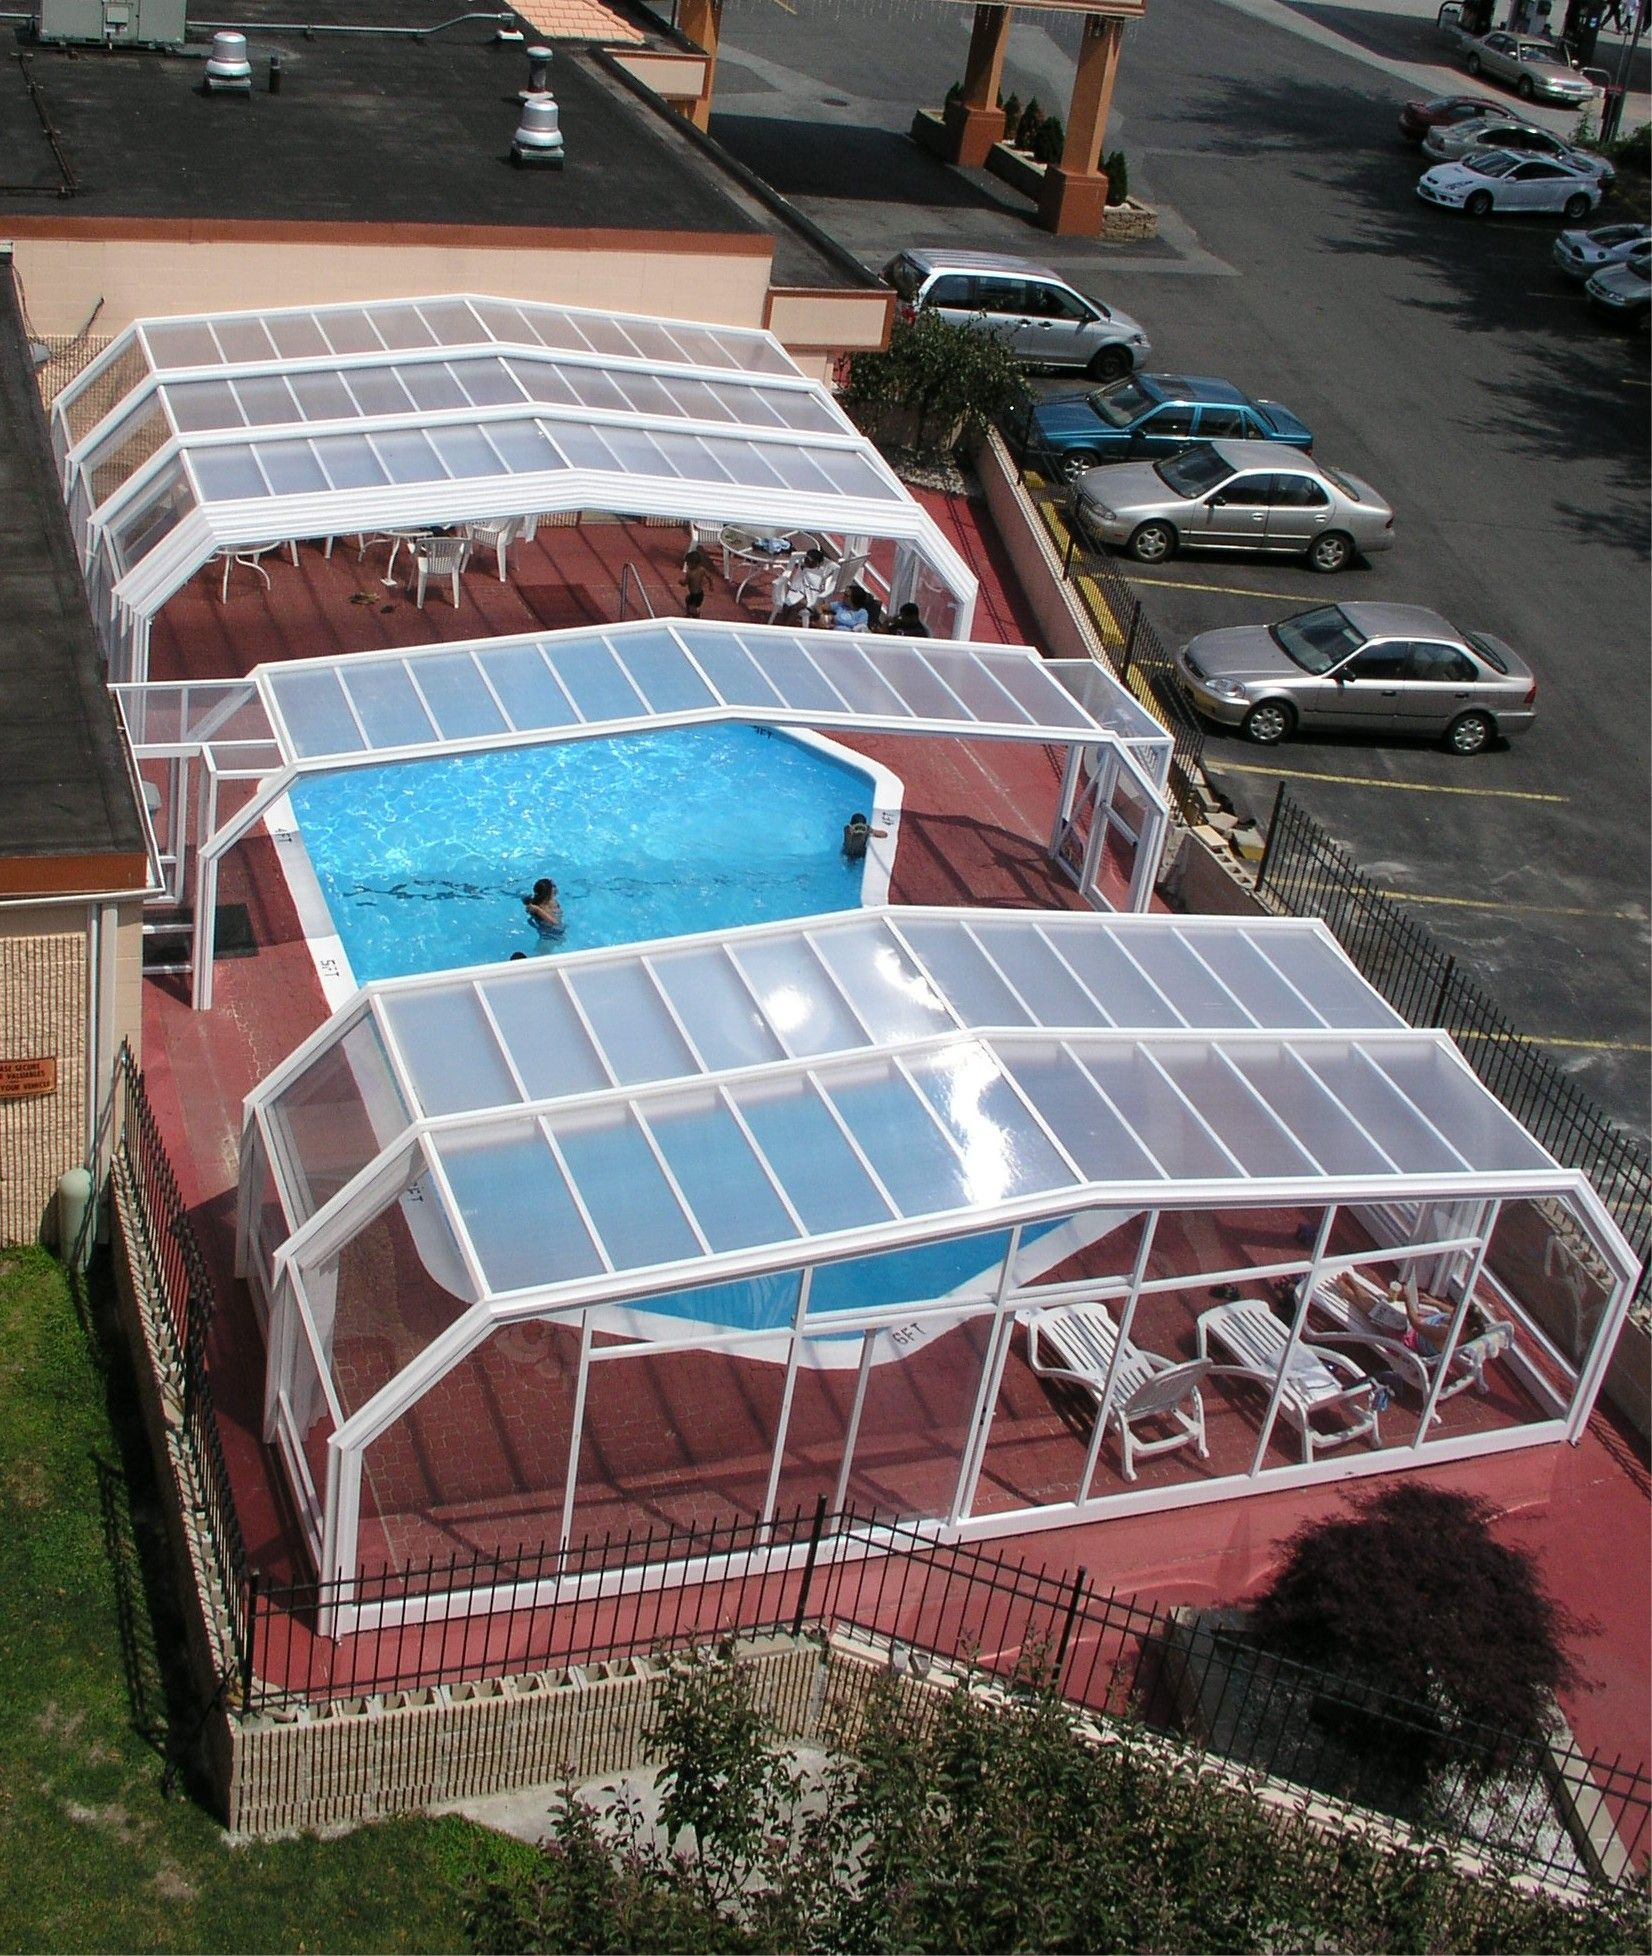 Retractable Roof Manufactured By Roll A Cover Intl Pool Enclosures Retractable Roof Swimming Pool Enclosures